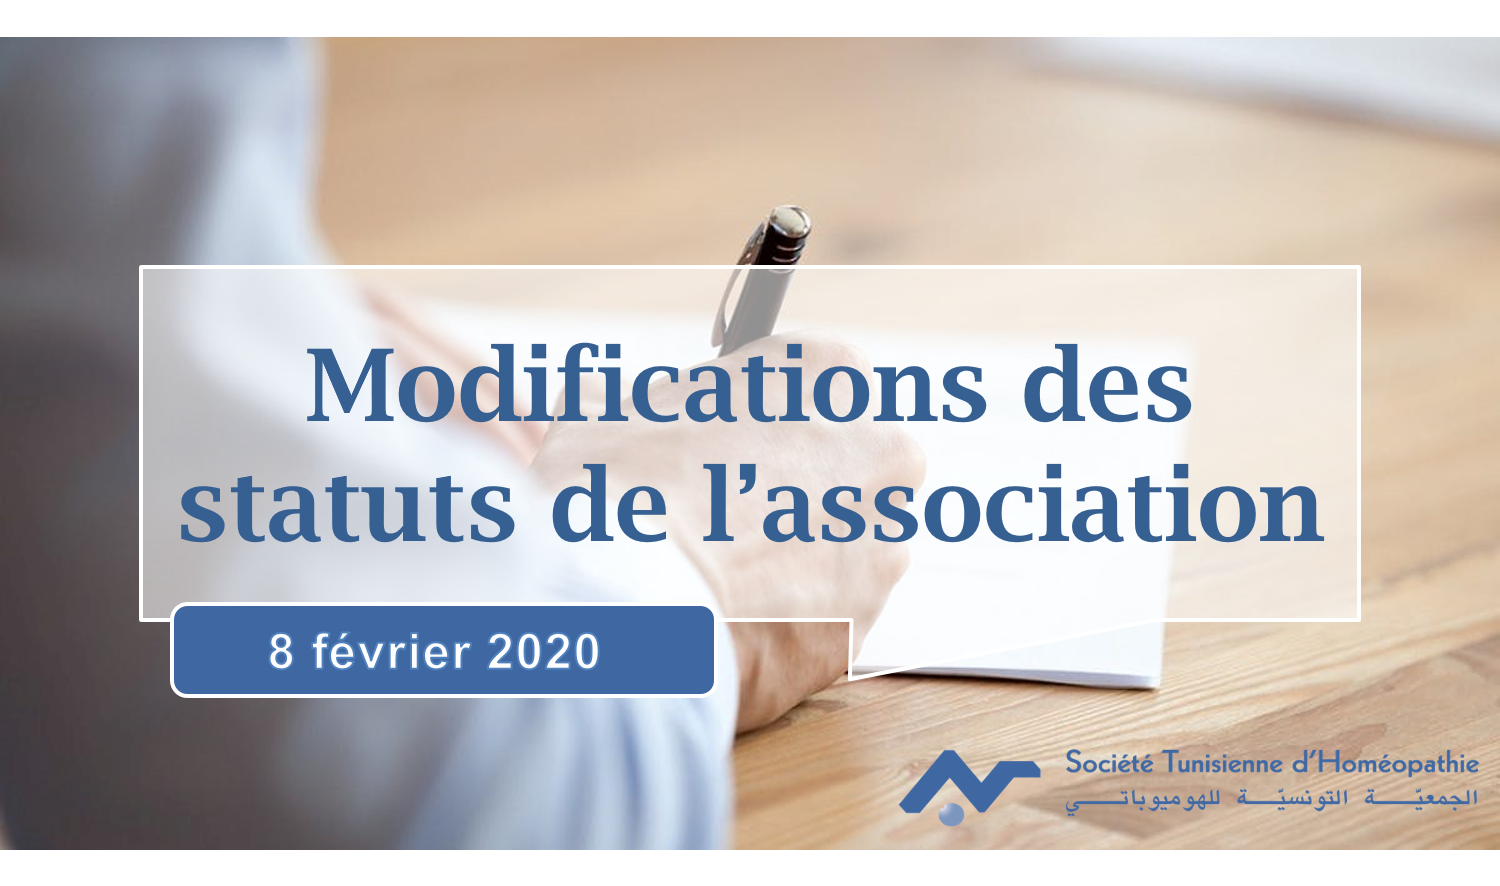 Modifications des statuts de l'association